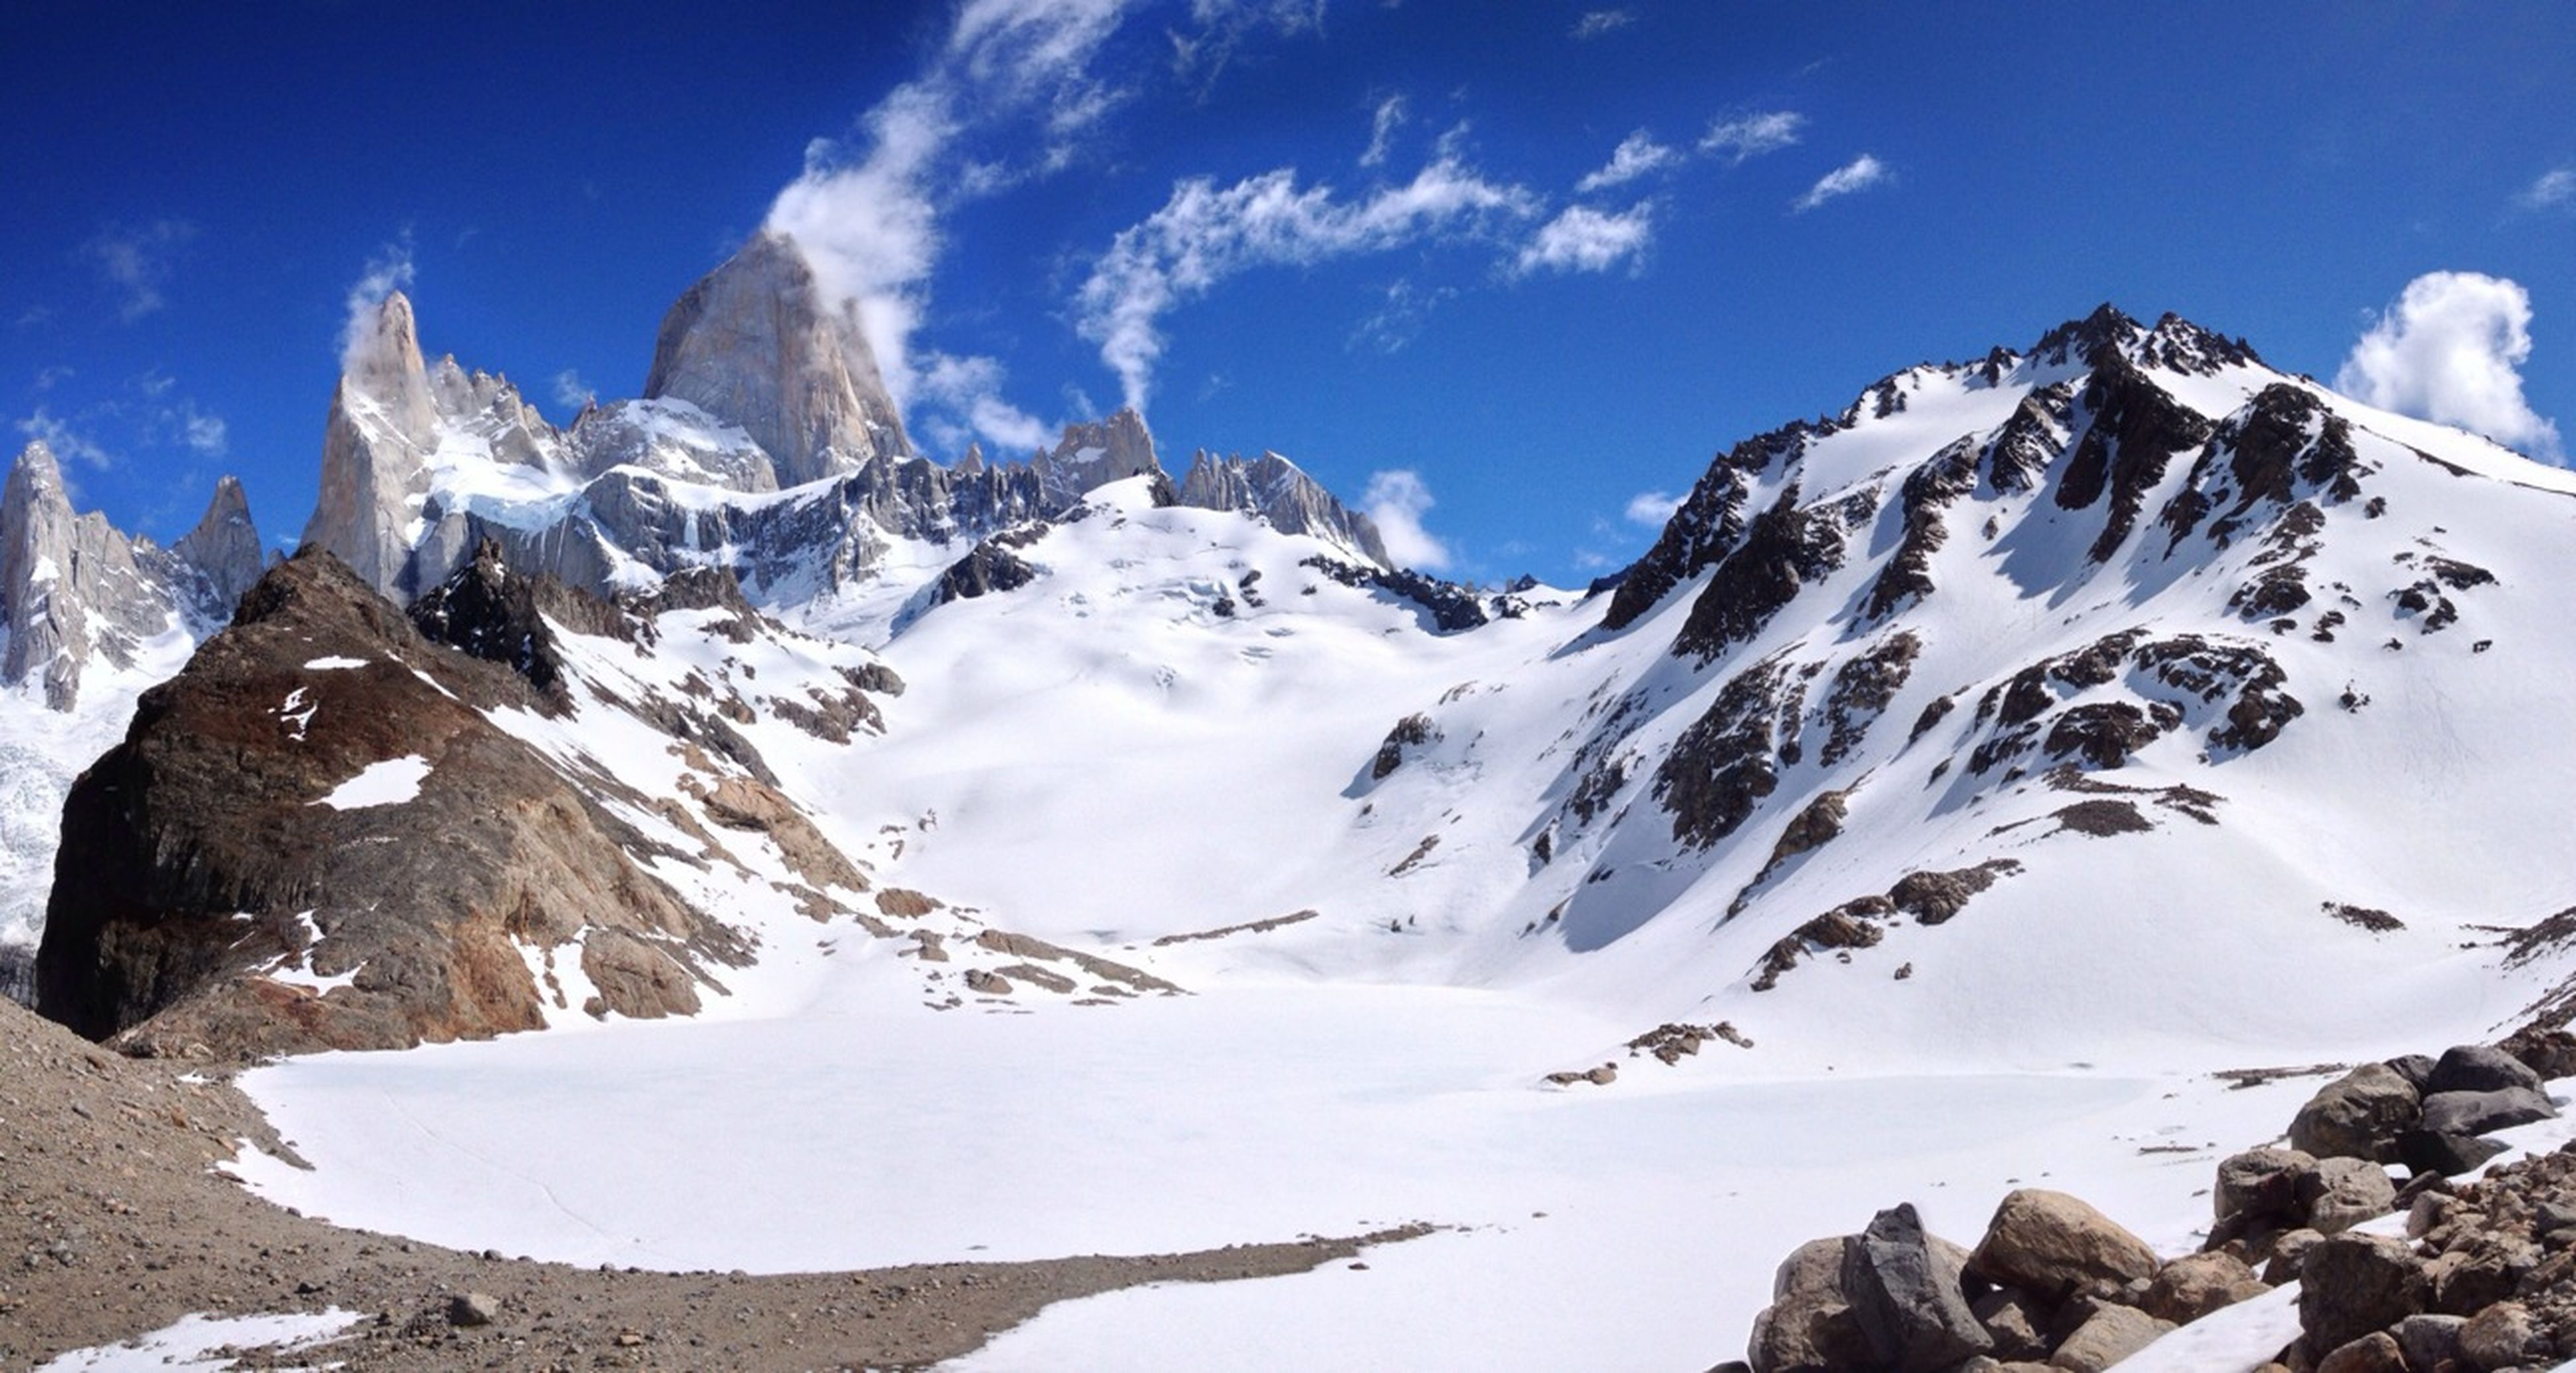 snow, mountain, cold temperature, winter, mountain range, snowcapped mountain, season, tranquil scene, sky, tranquility, beauty in nature, scenics, nature, weather, blue, landscape, rock - object, rocky mountains, non-urban scene, sunlight